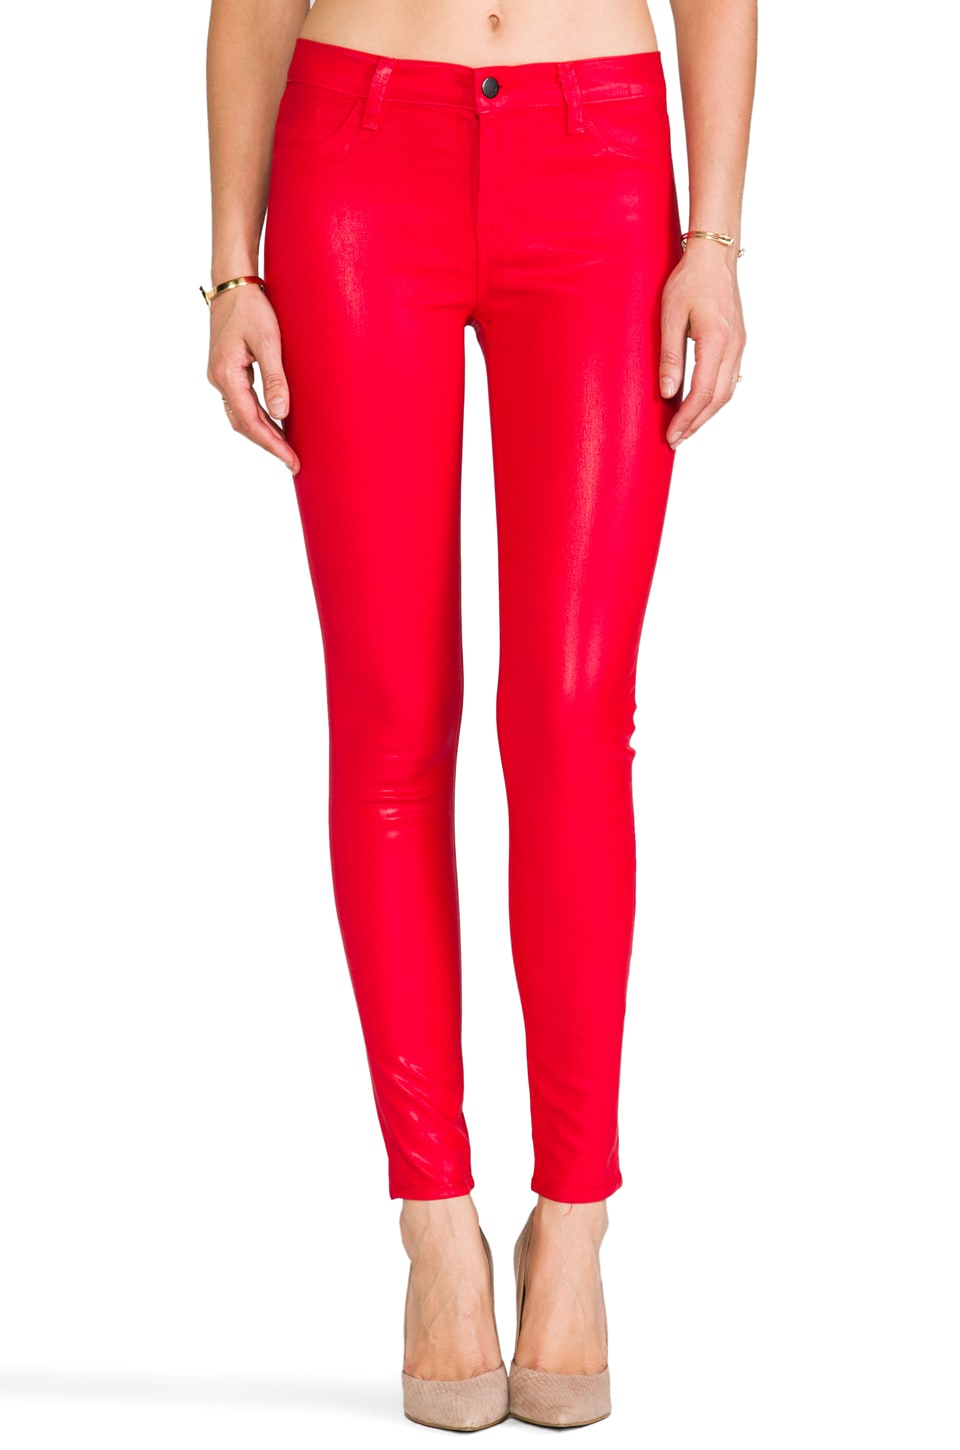 J Brand Midrise Legging in Coated Adra Red